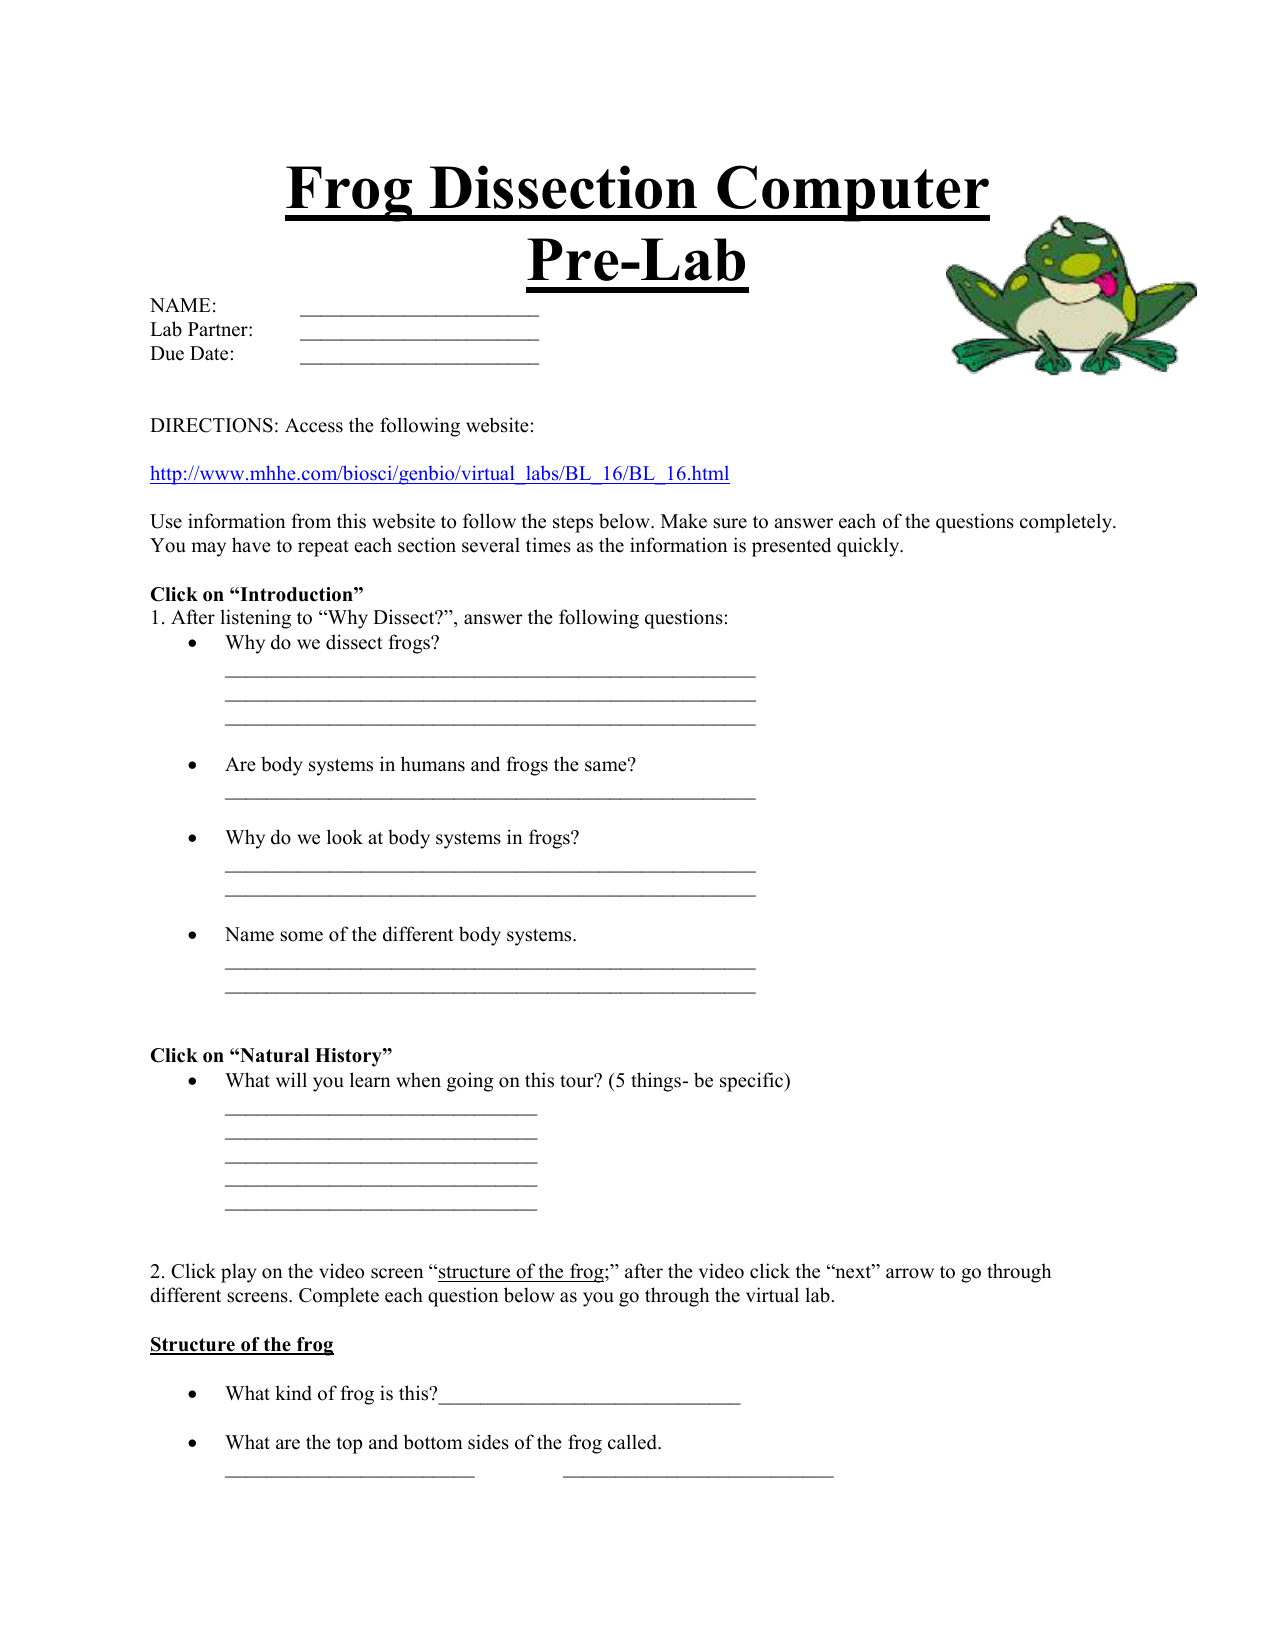 Frog dissection worksheet answer key